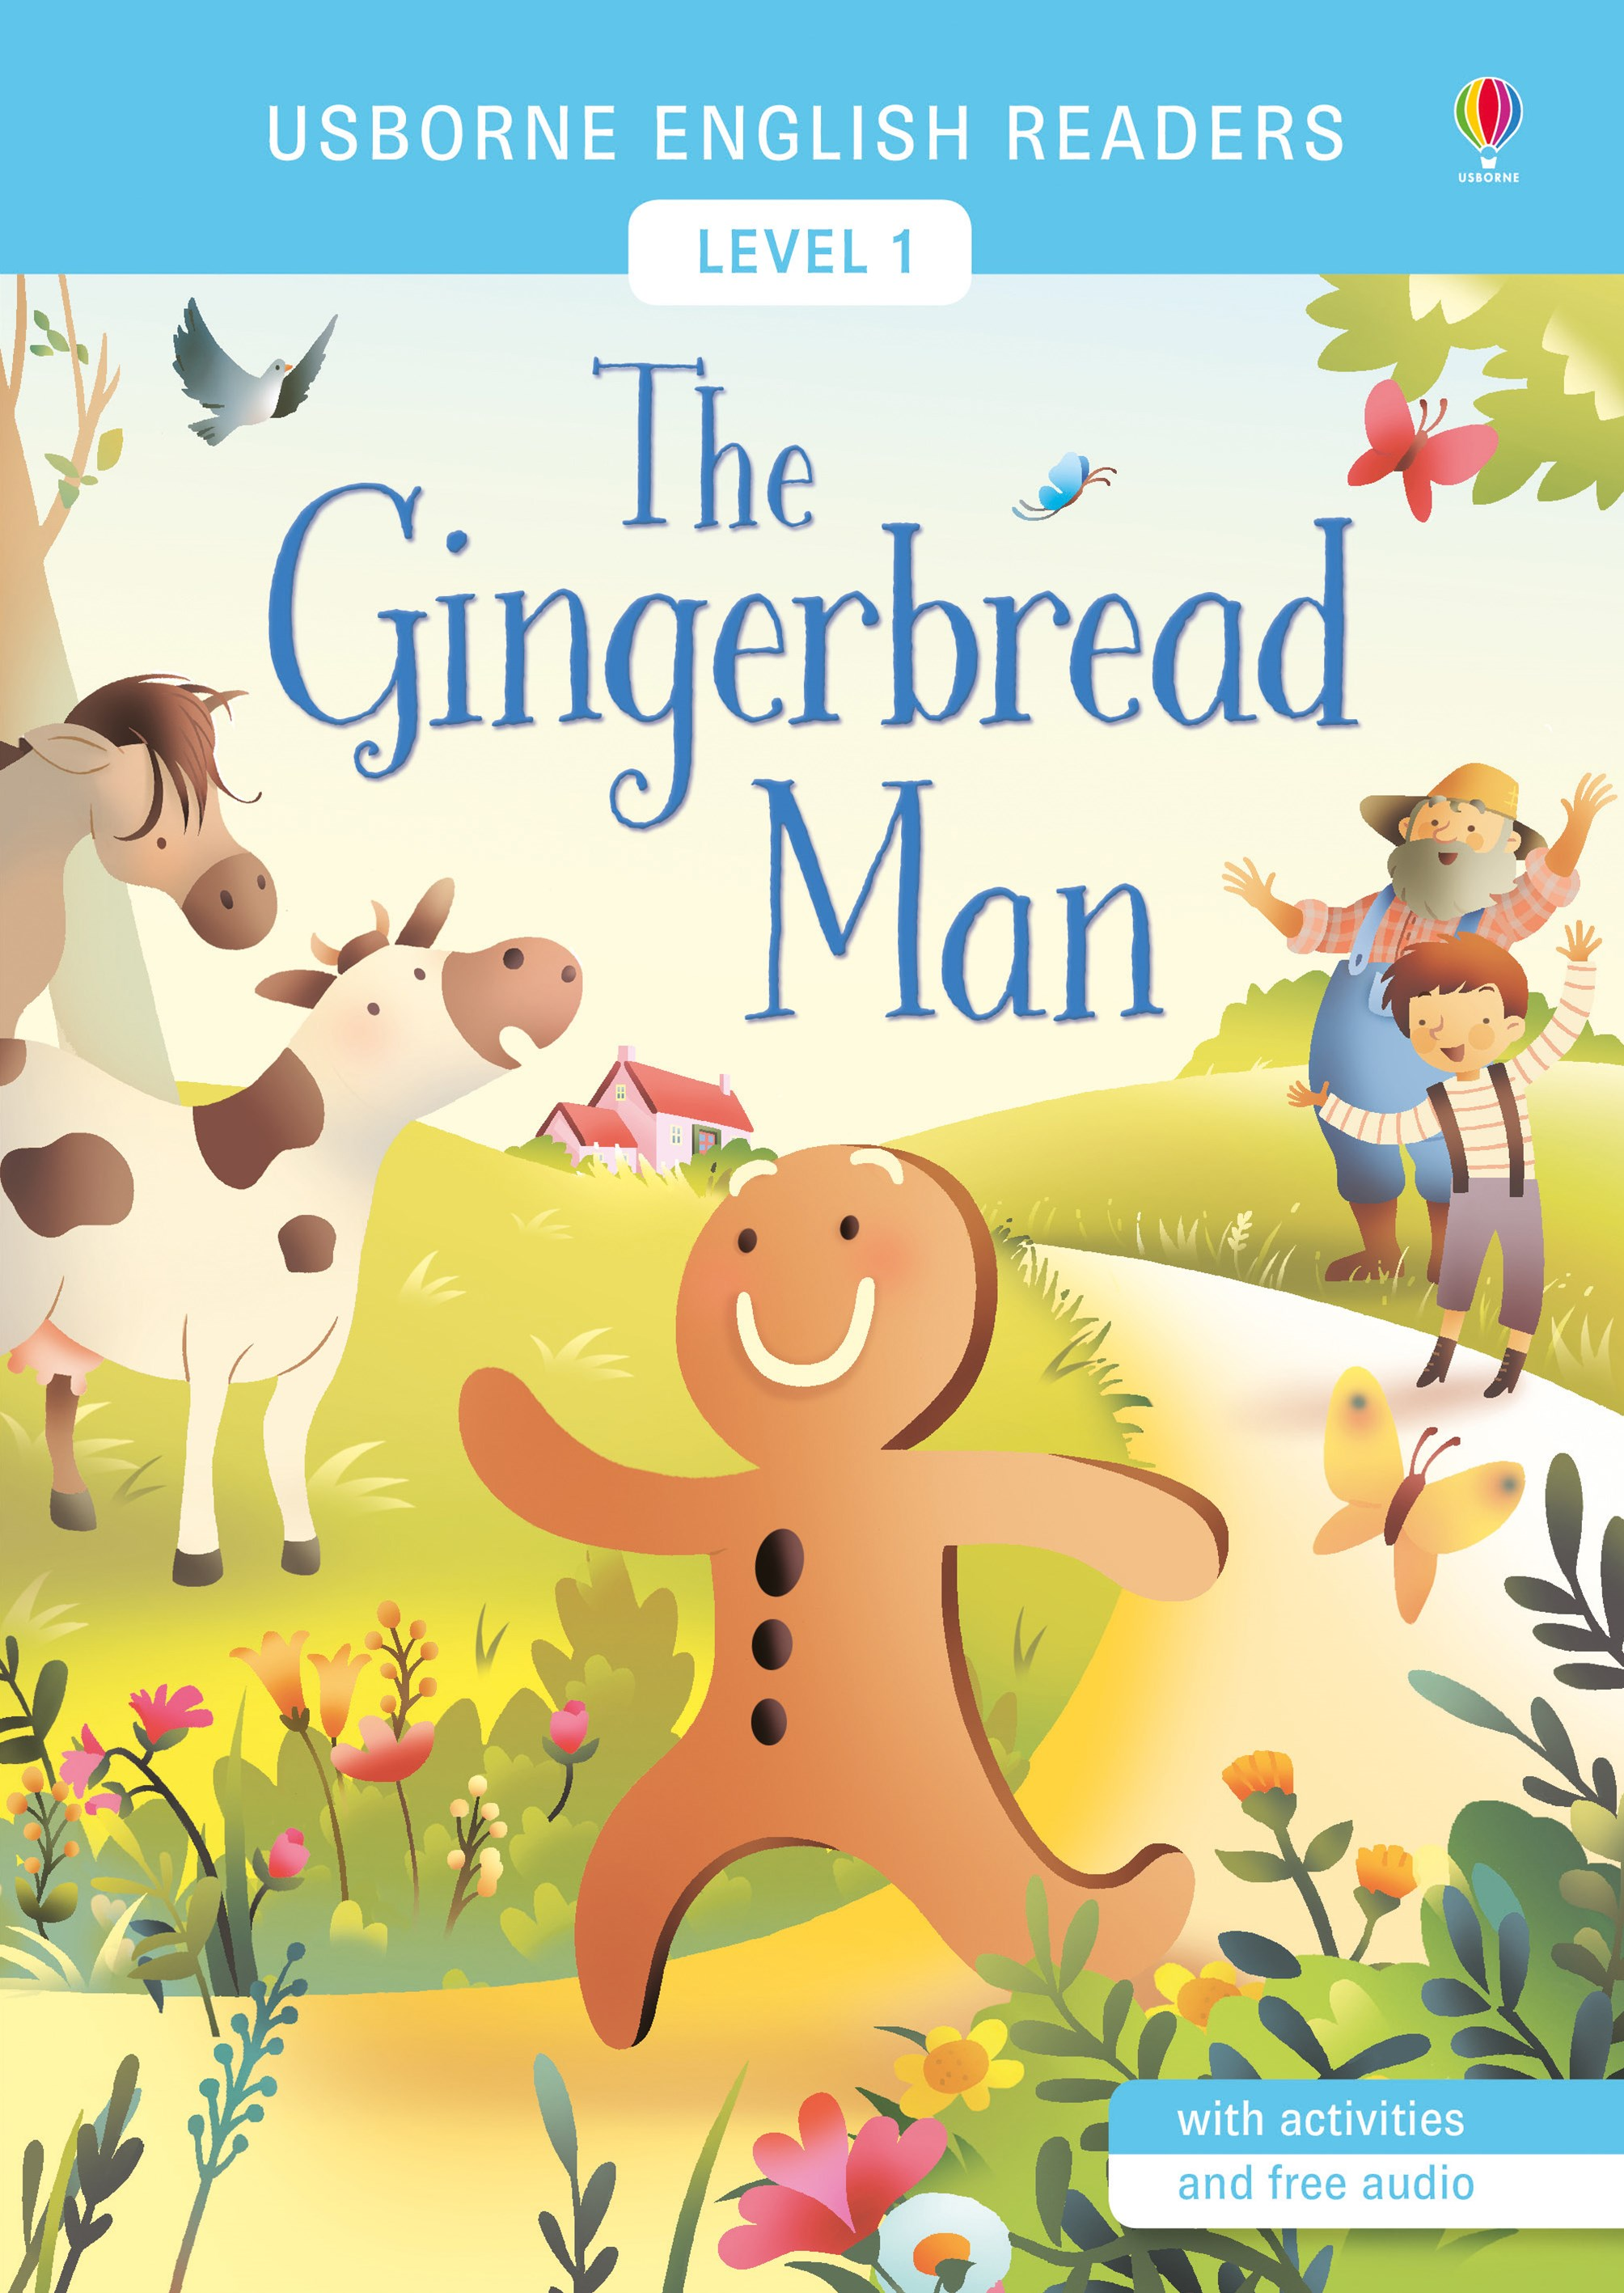 Usborne English Readers: The Gingerbread Man